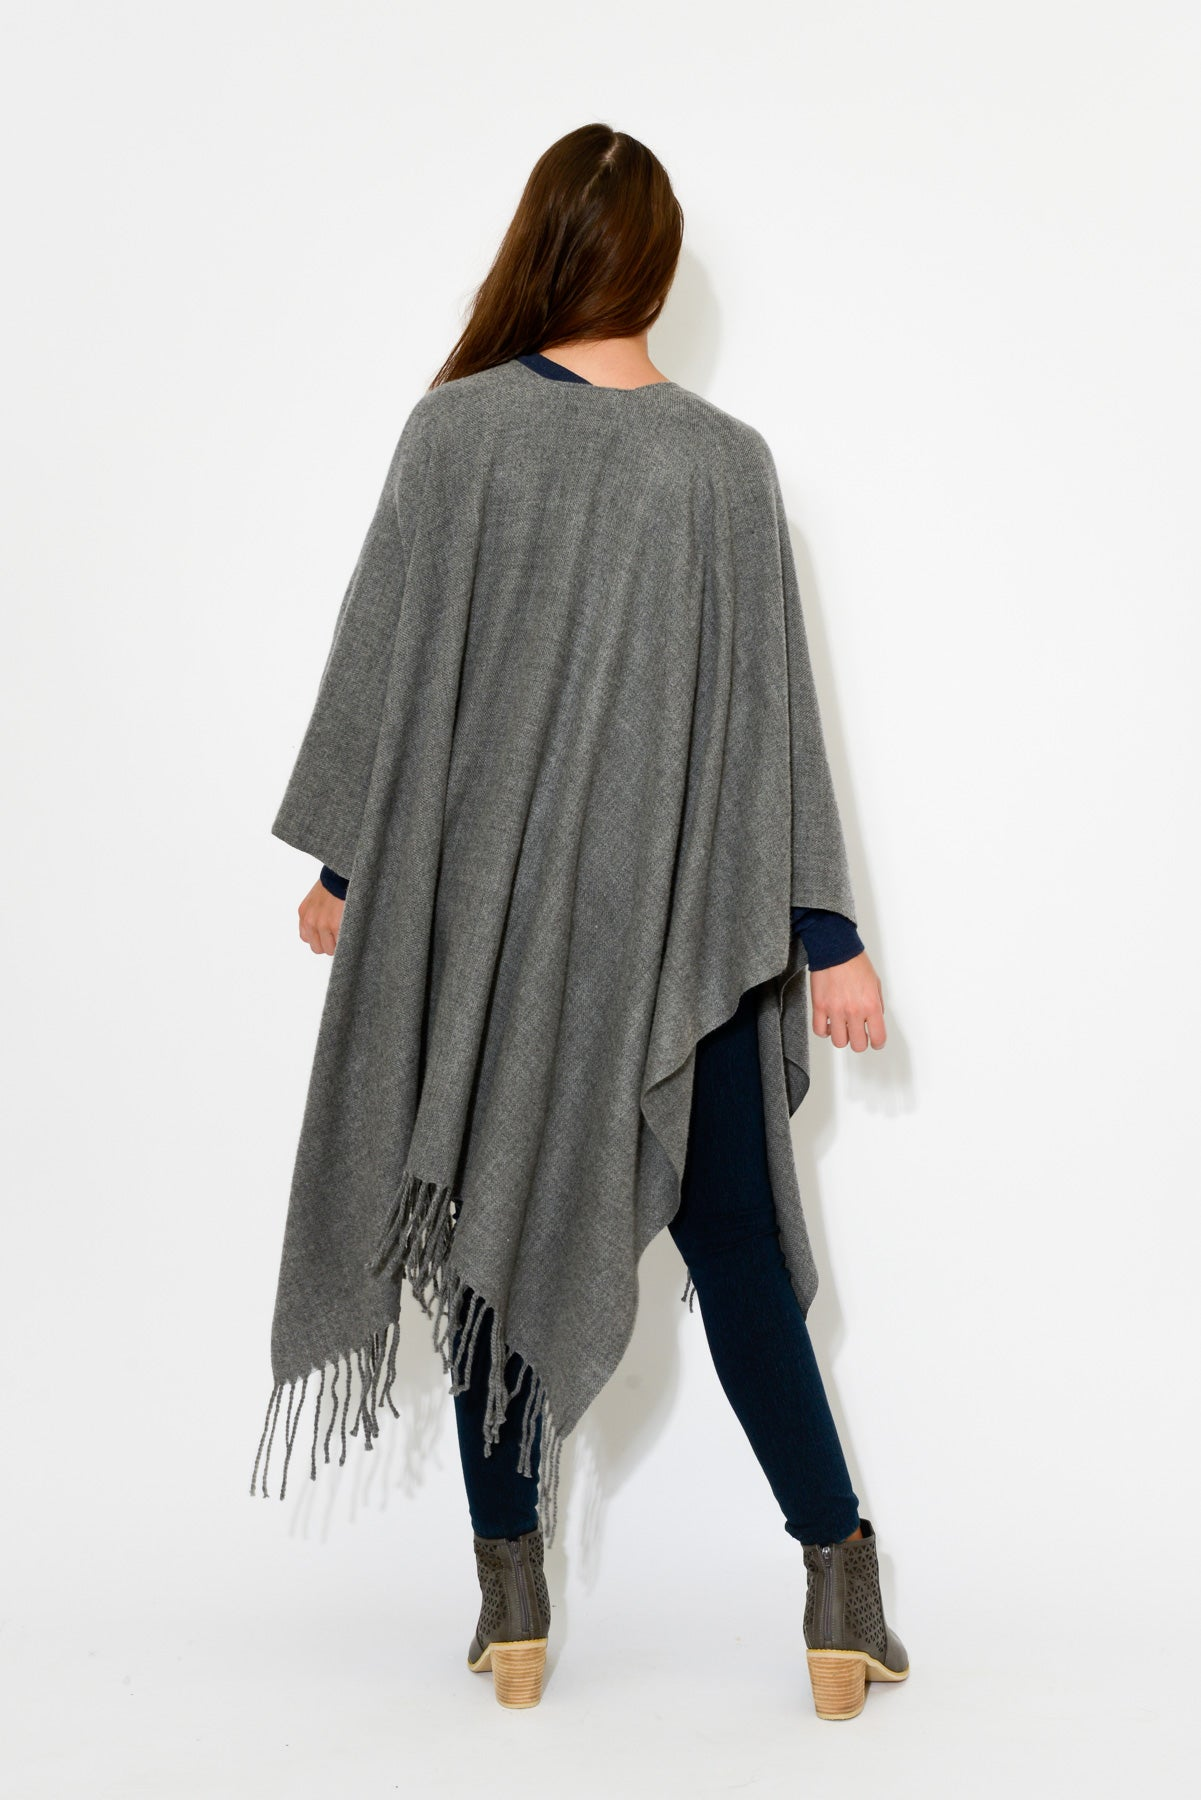 Peta Grey Merino Wool Wrap - Blue Bungalow